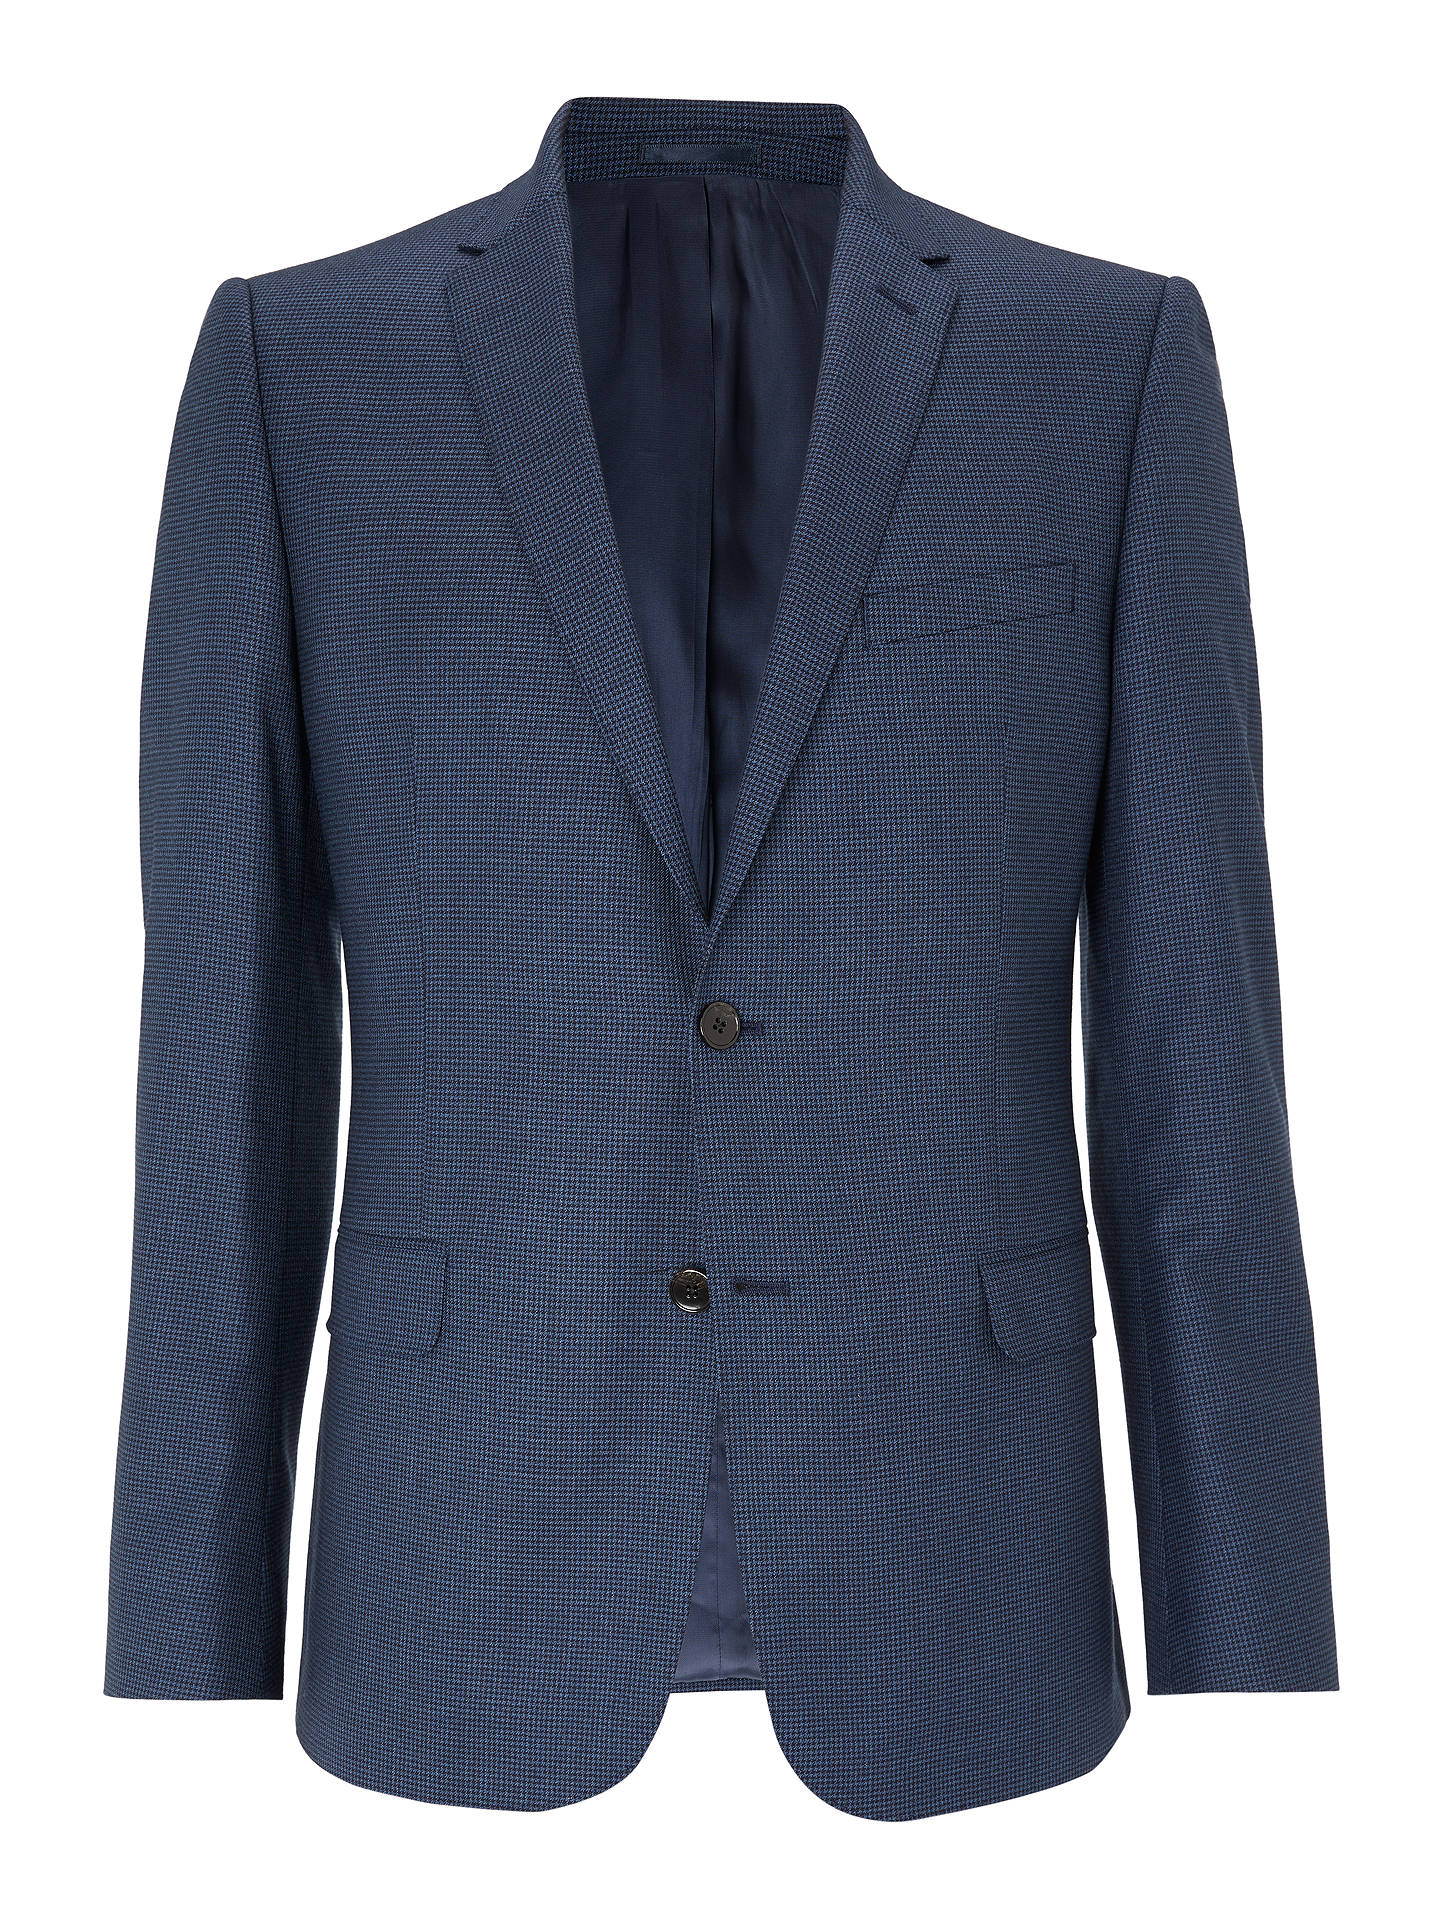 Buy John Lewis & Partners Wool Puppytooth Slim Fit Suit Jacket, Blue, 42S Online at johnlewis.com